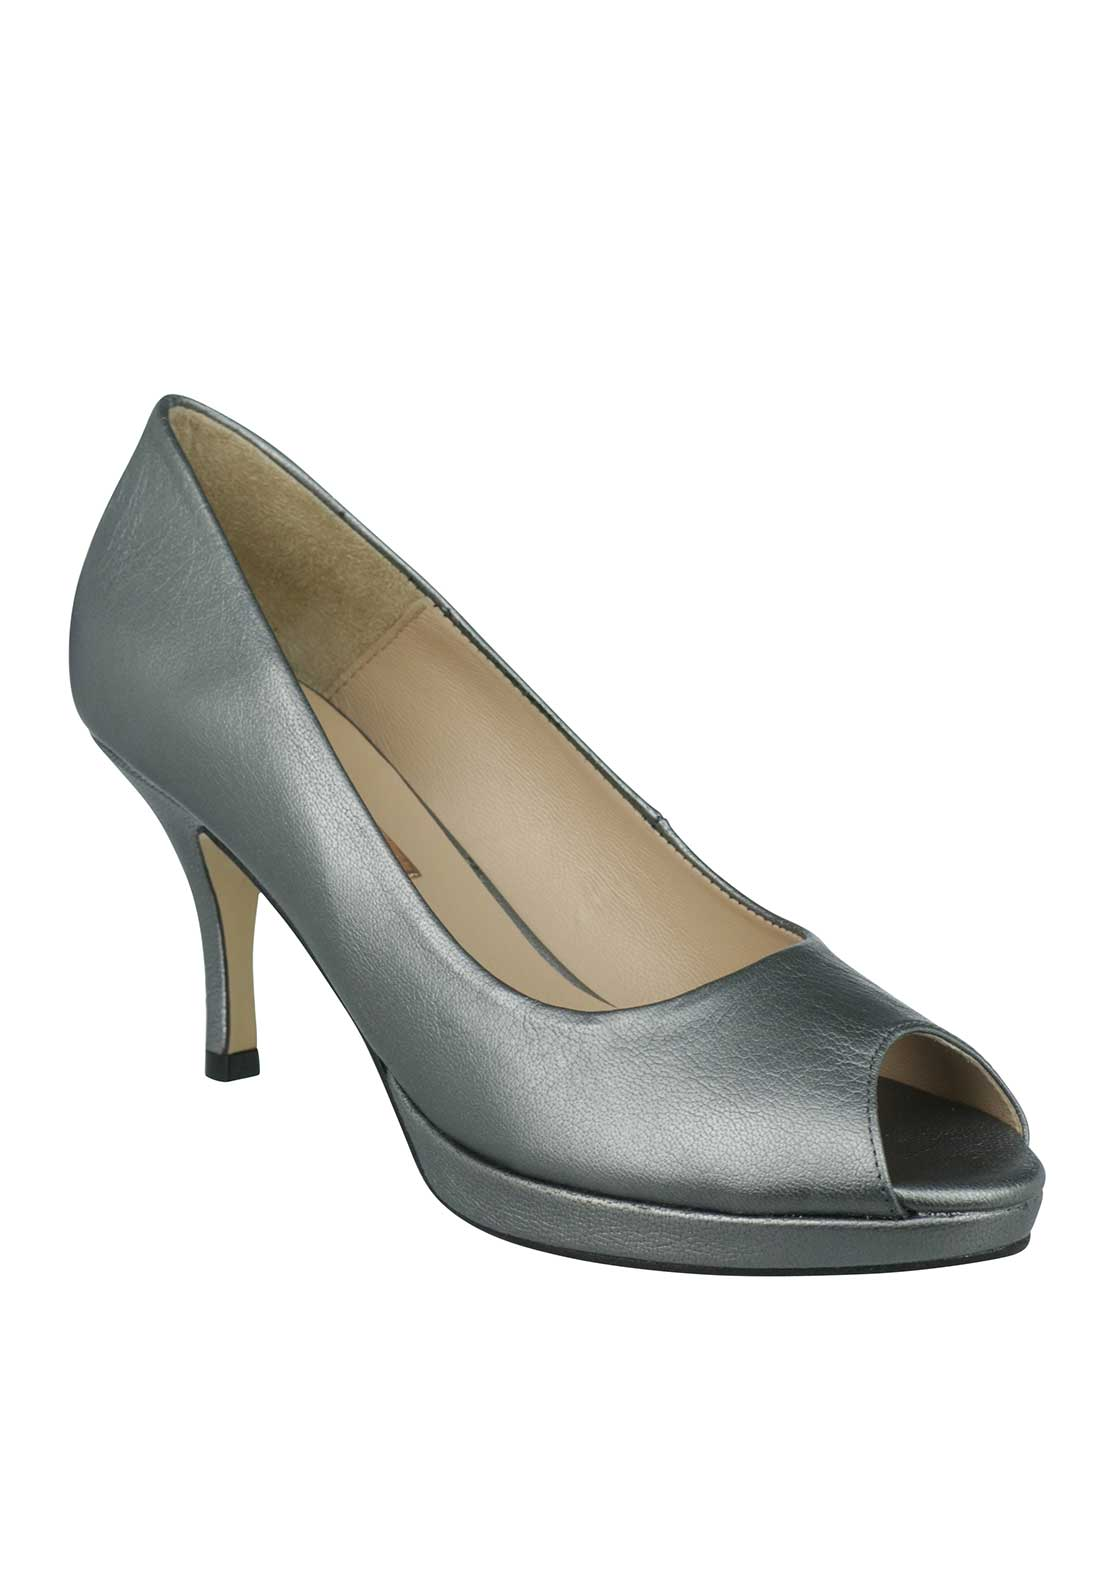 Marian Leather Peep Toe Heeled Shoes, Metallic Silver